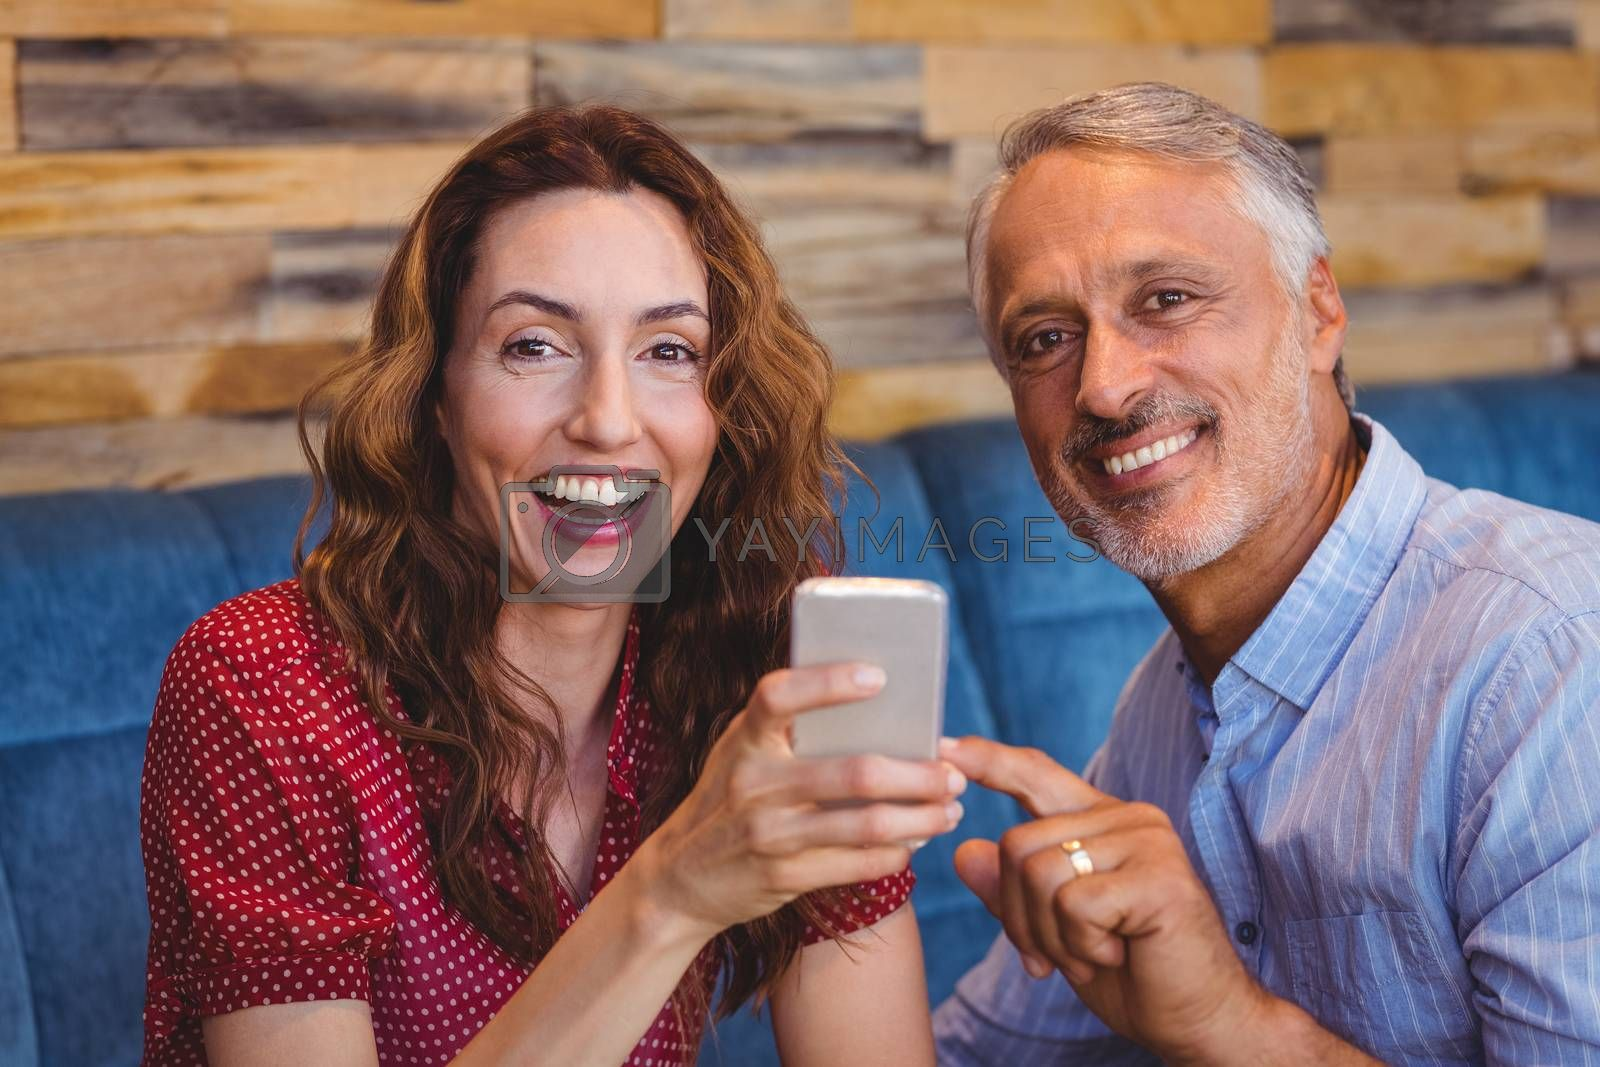 Royalty free image of cute couple looking at their phones by Wavebreakmedia